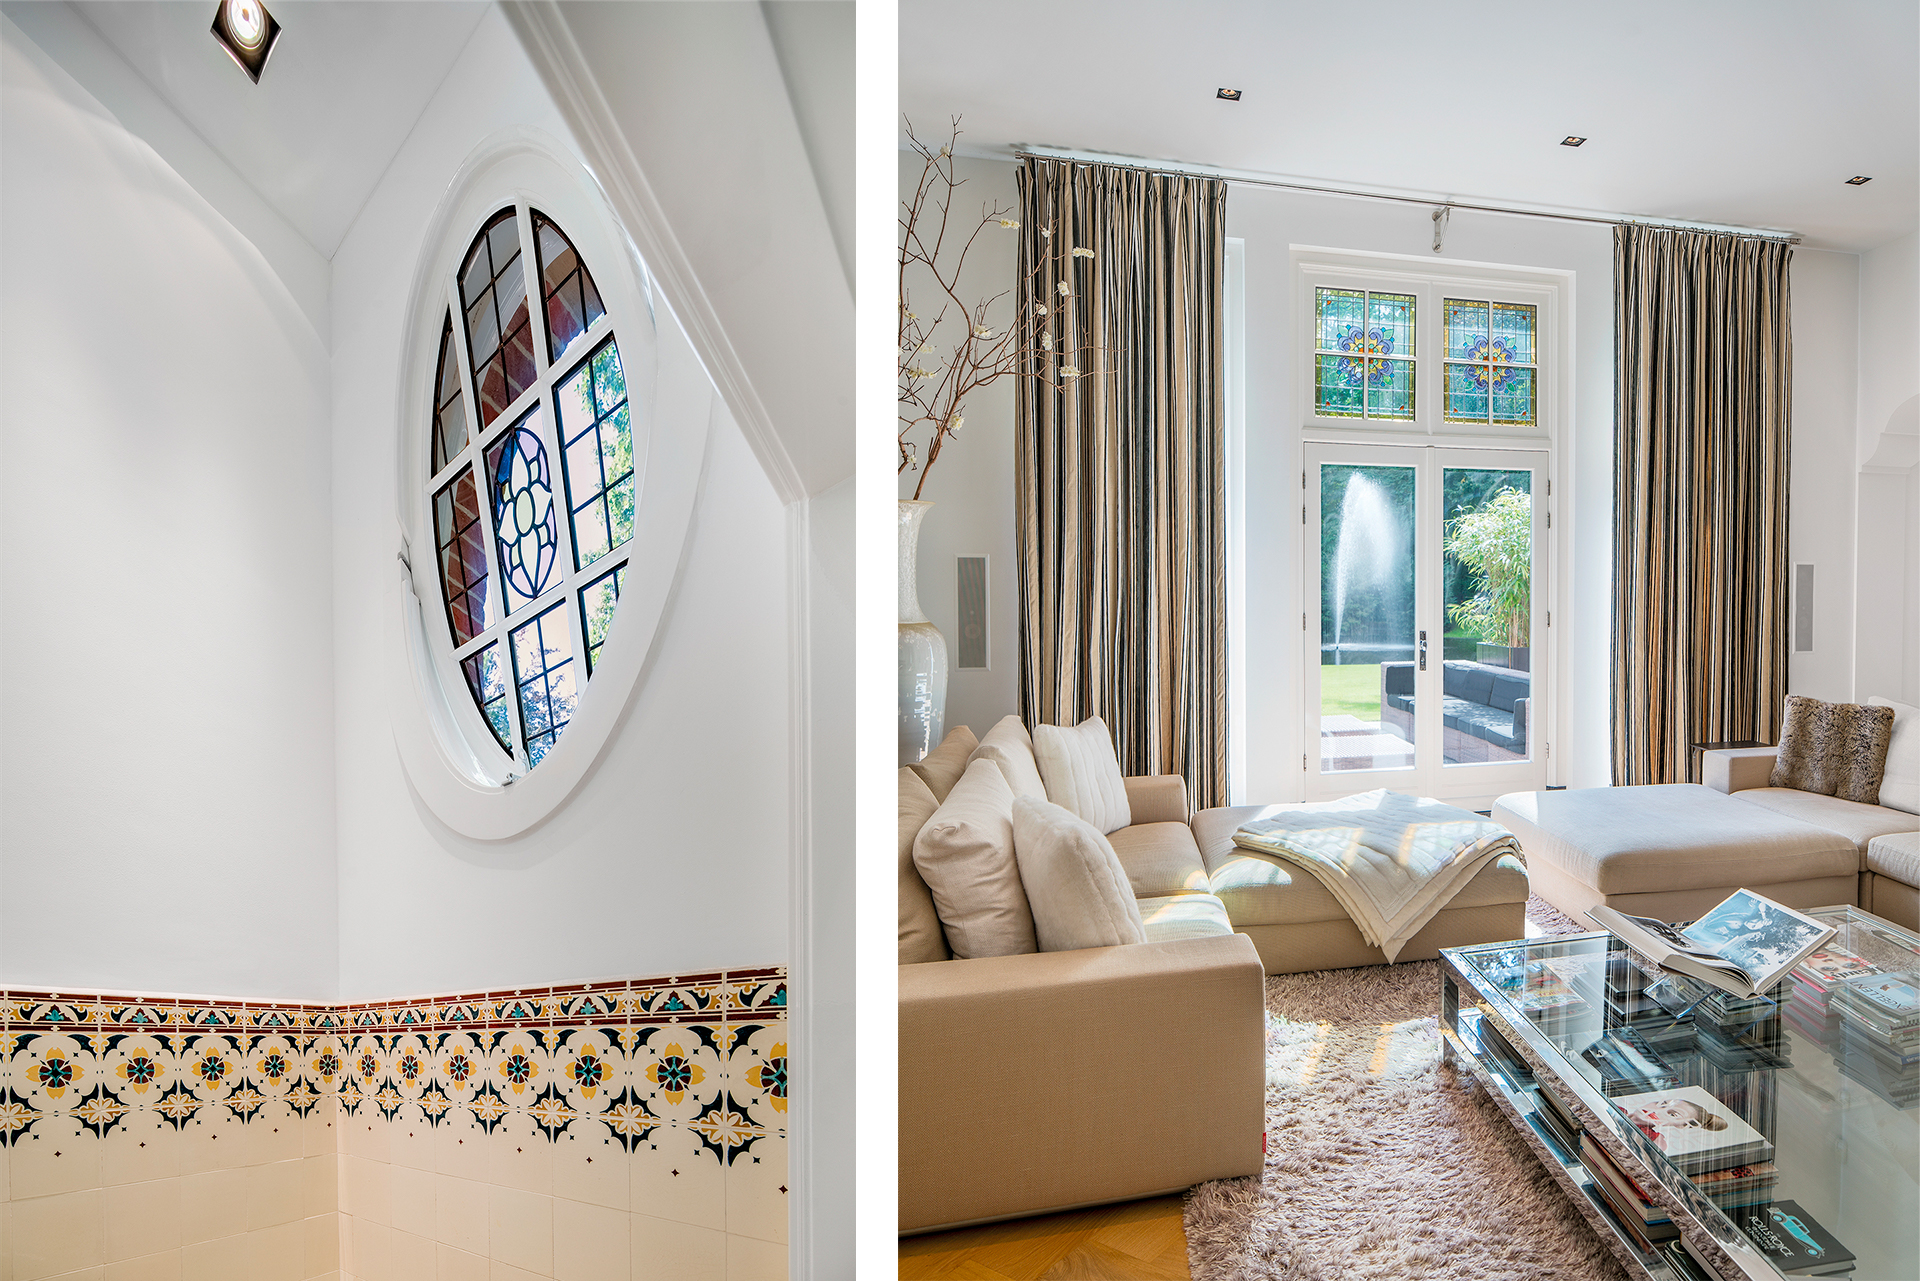 Two photos depicting blueish stained glass in their respective rooms